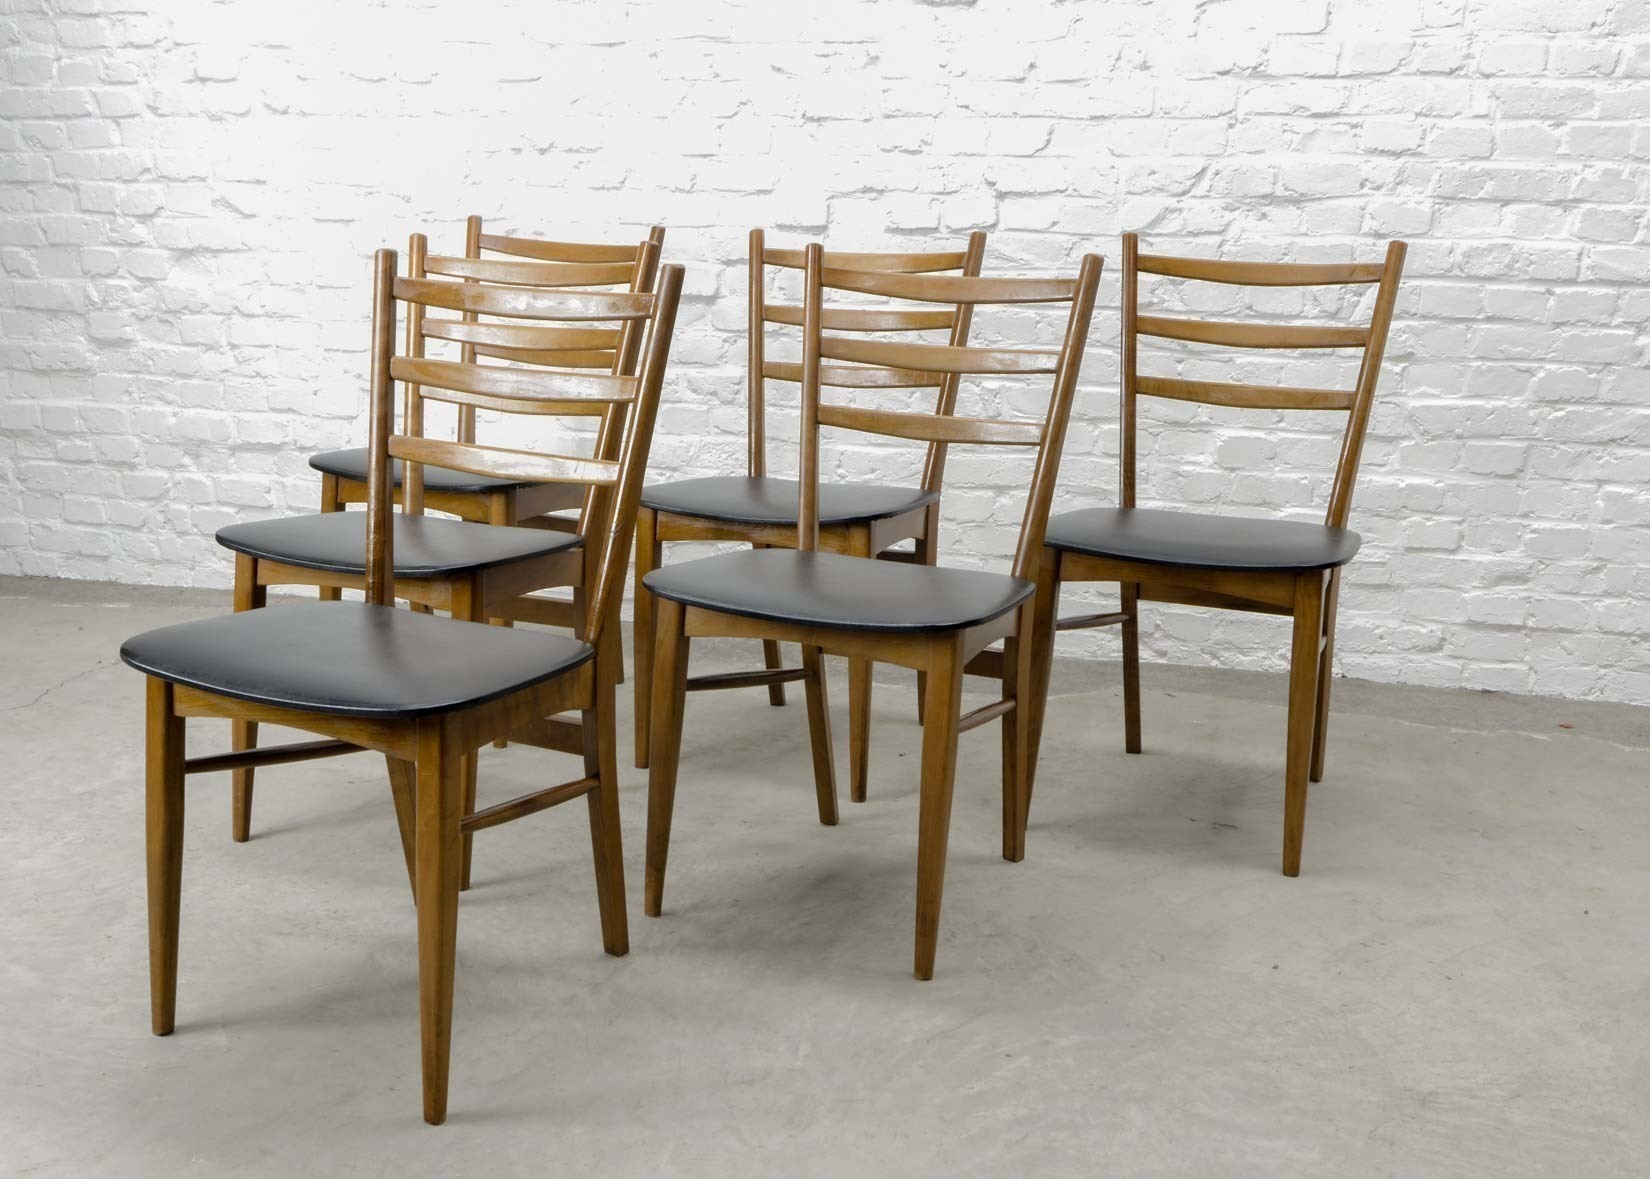 Set Of Six Mid Century Design Solid Wood Ladder Dining Chairs With Black Leatherette Seating 1960s